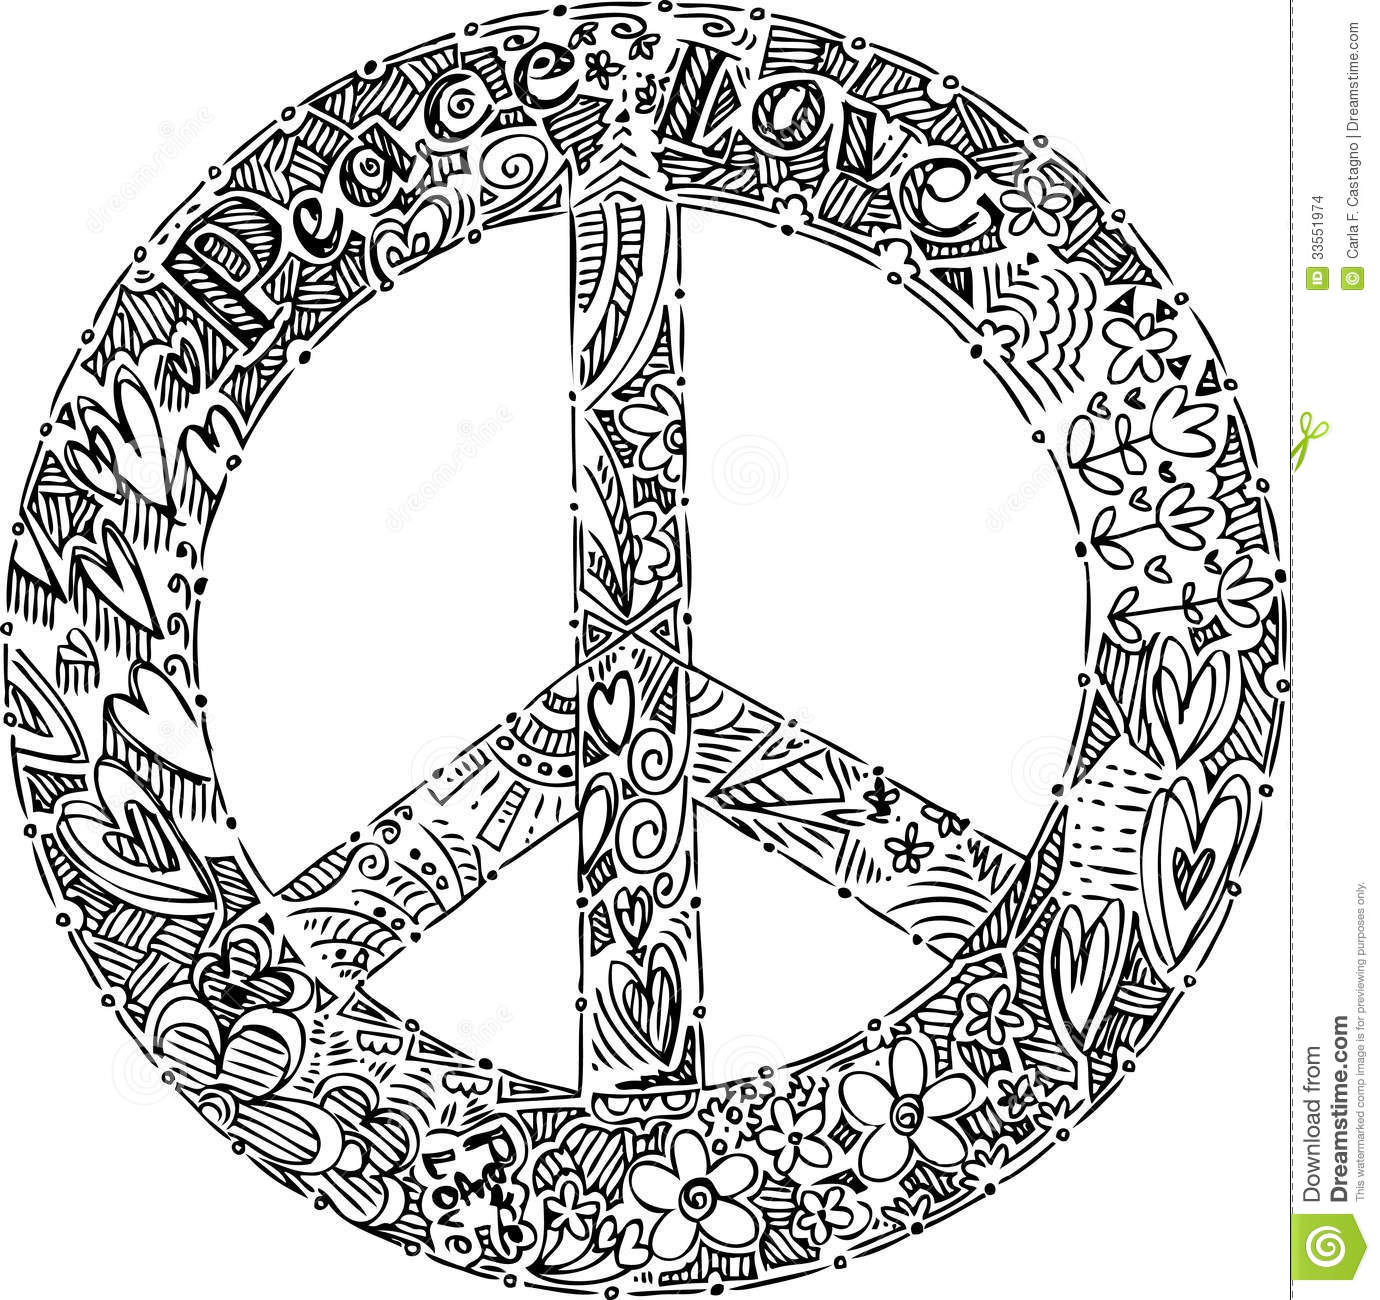 Coloring peace symbol vector stock images image 33551974 for Immagini vector